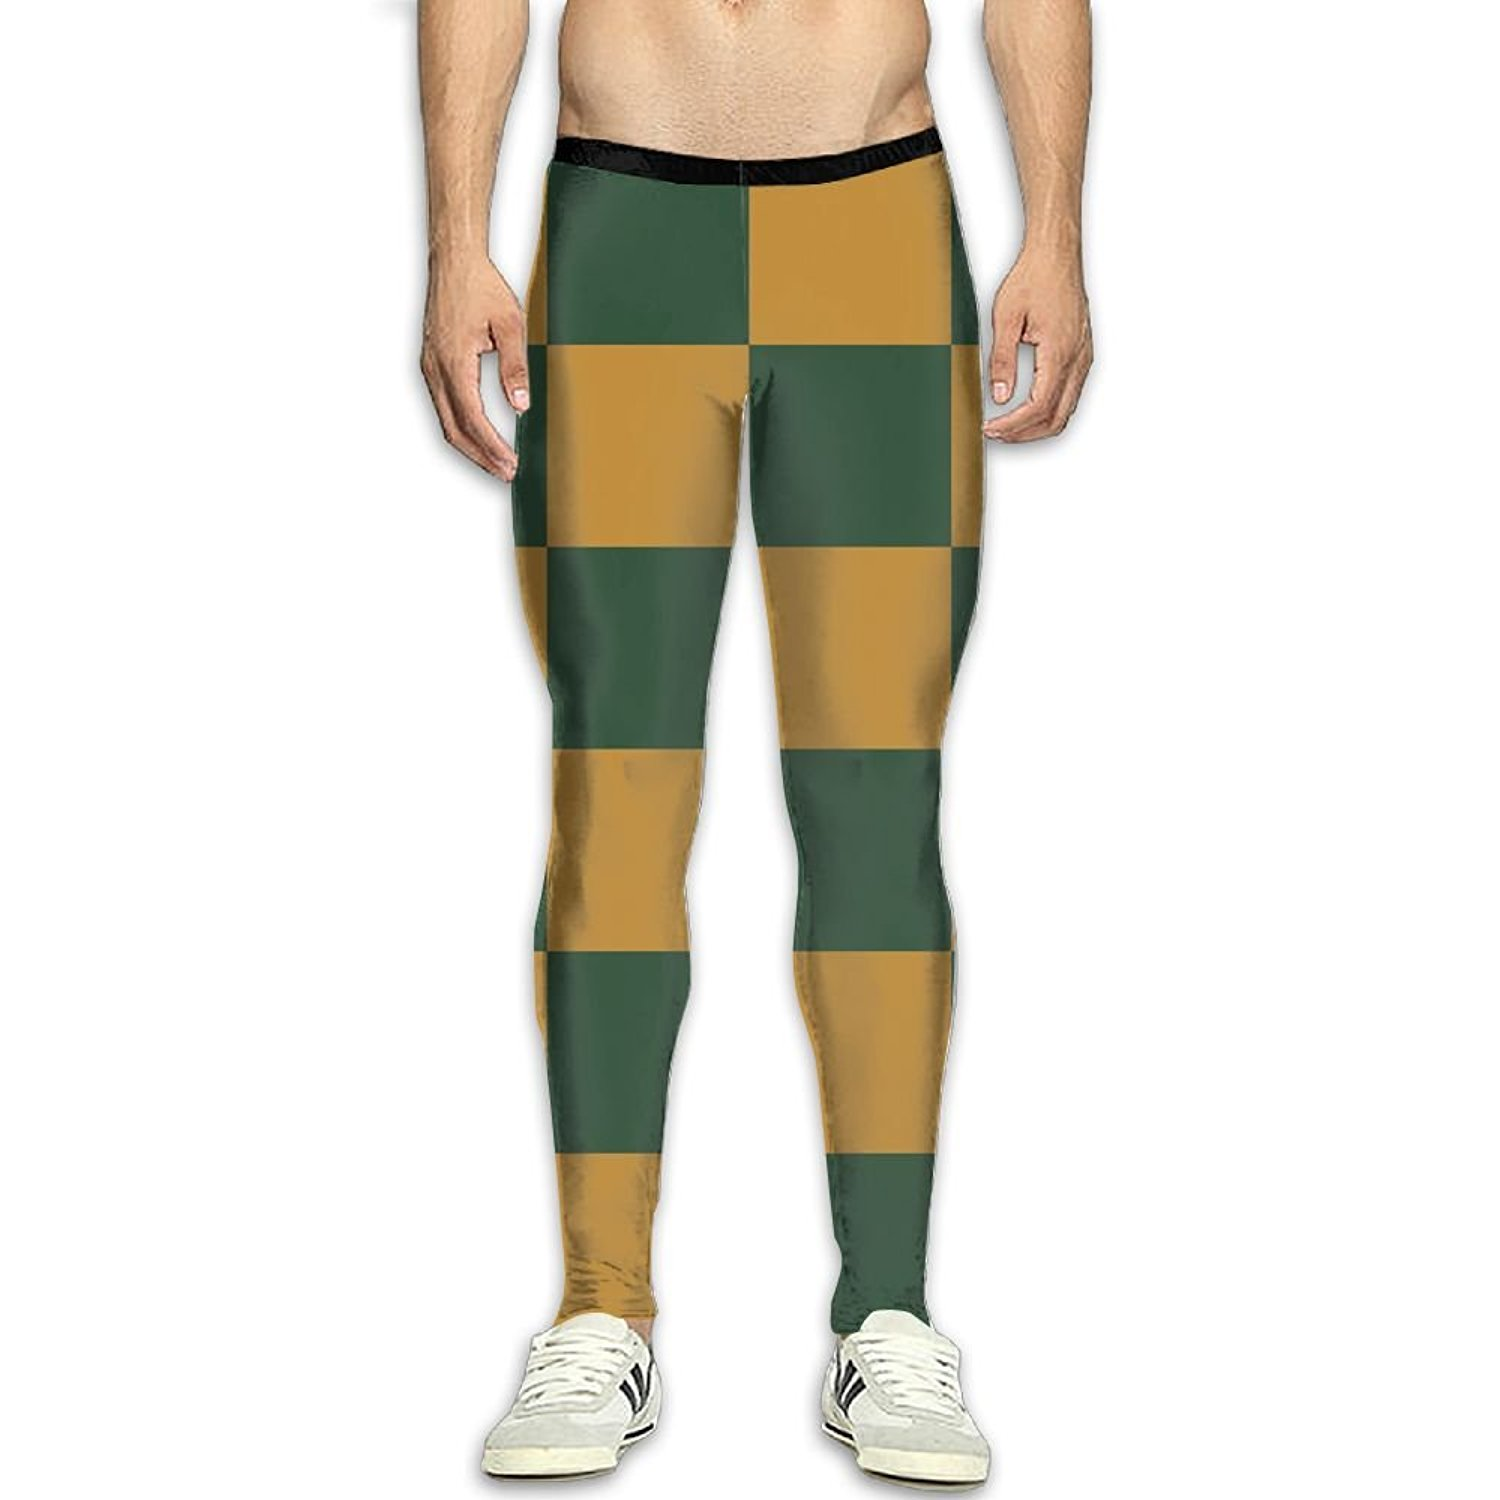 fd270e0ccc70c Get Quotations · Fri Plaid Cool Compression Pants/Running Tights Gym Tights  For Men Runners Side Pocket